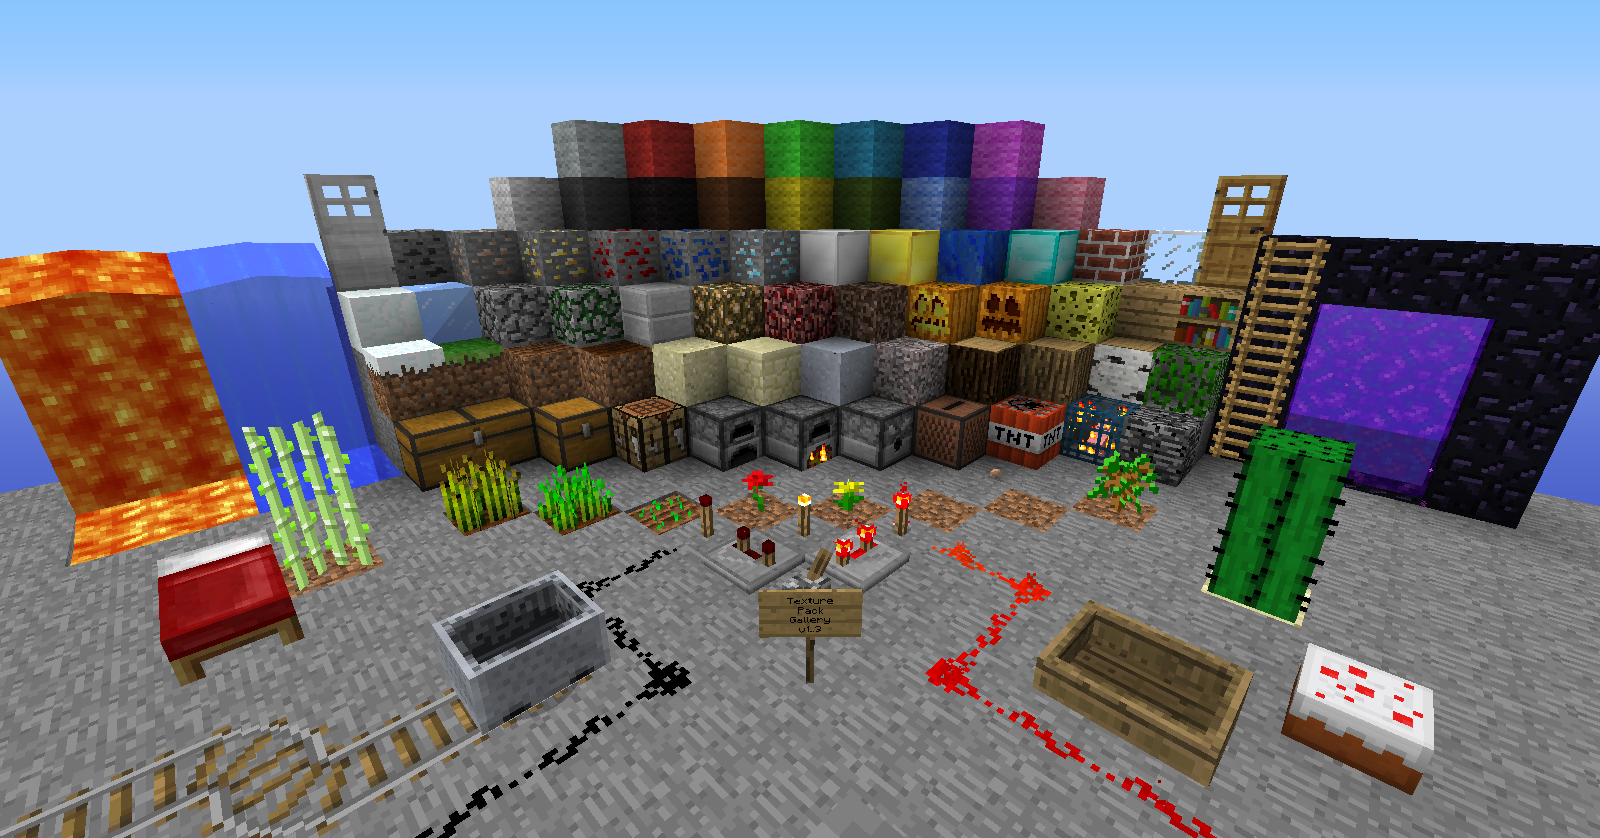 MineBlogCraft - Let's punch some trees!: Minecraft Texture Packs